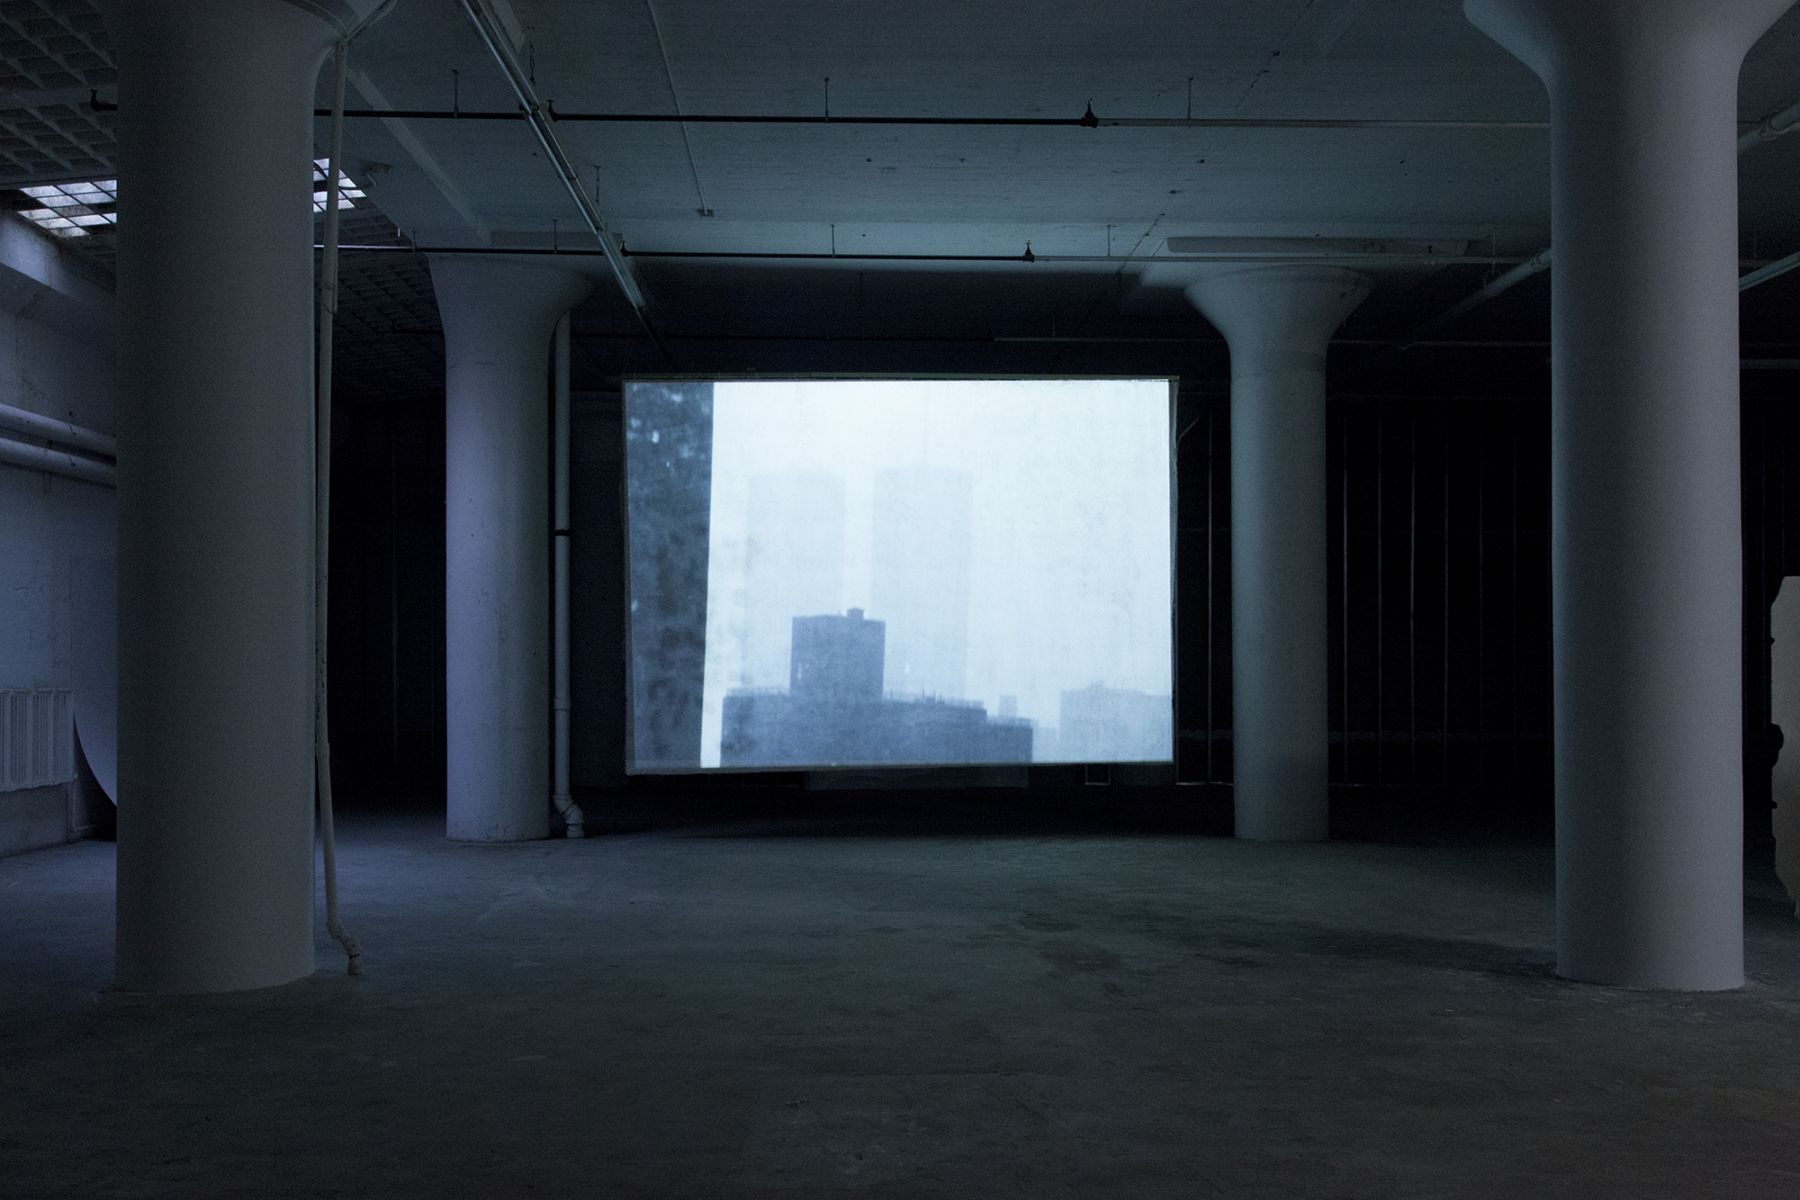 Lutz Bacher, Installation view, Snow, Greene Naftali, New York, 2014